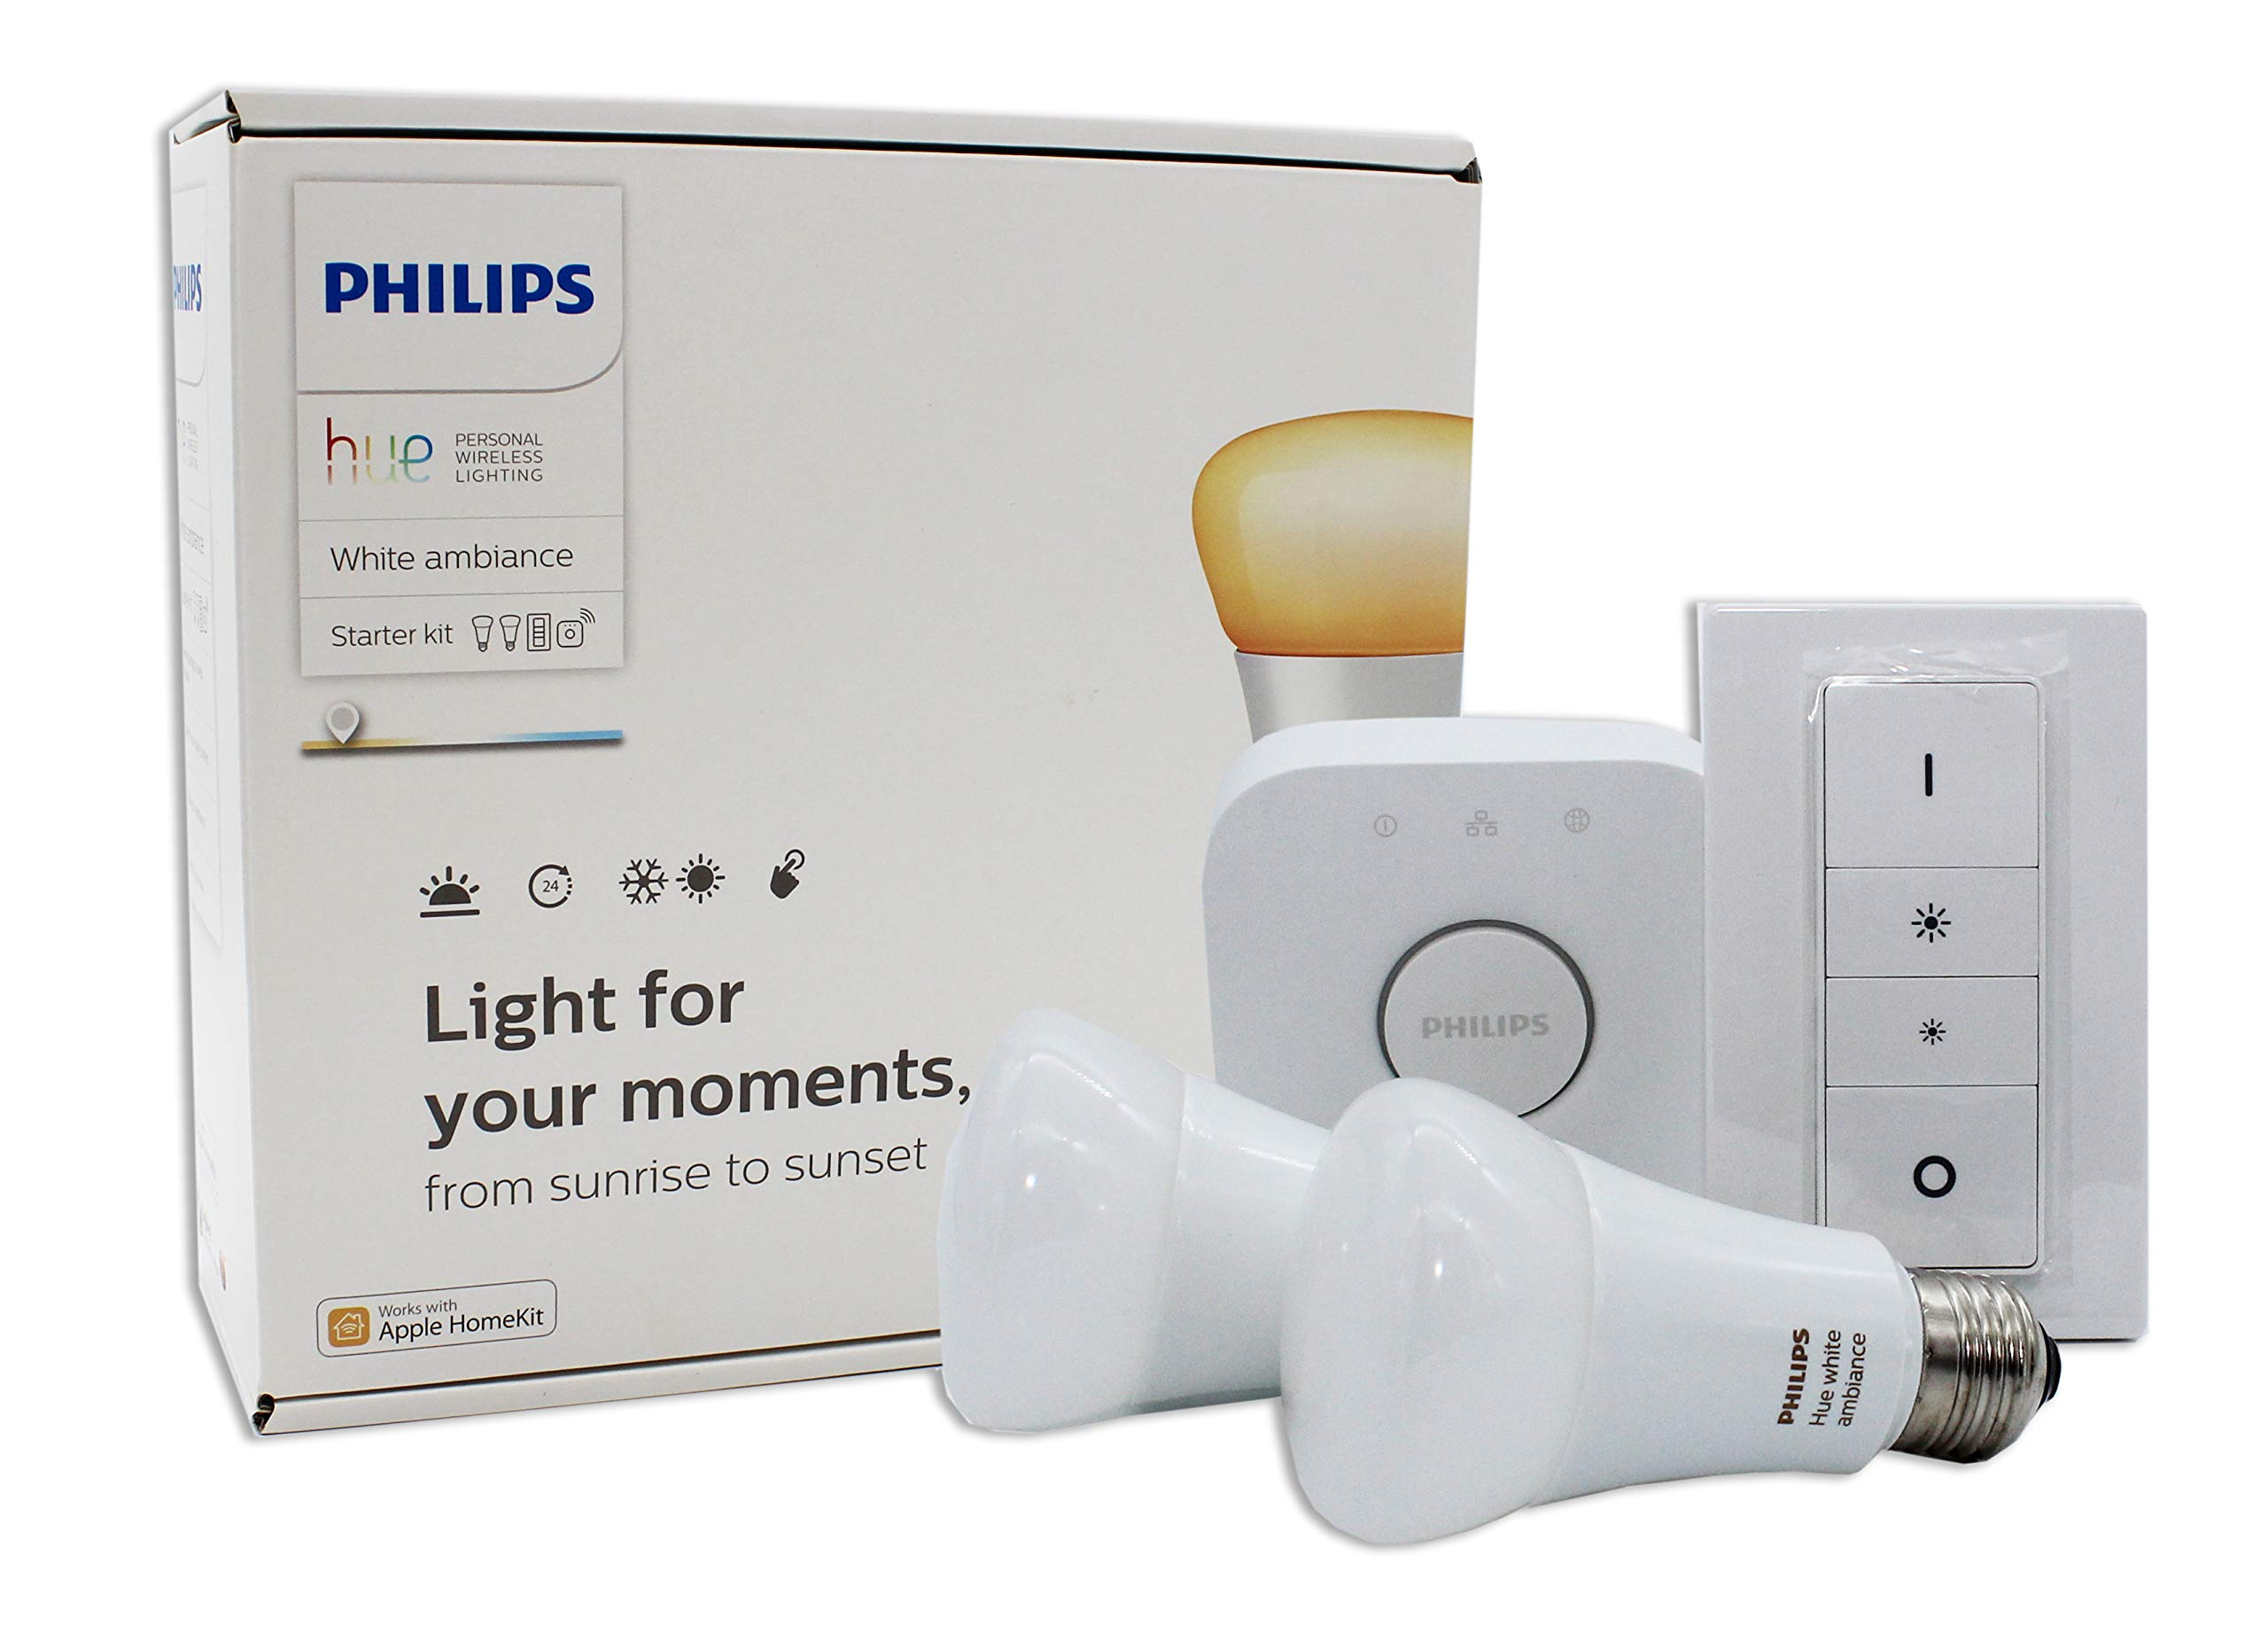 Philips Hue White Ambiance Smart Bulb Starter Kit - Edison Screw E27 (Compatible with Amazon Alexa, Apple HomeKit, and Google Assistant) 7